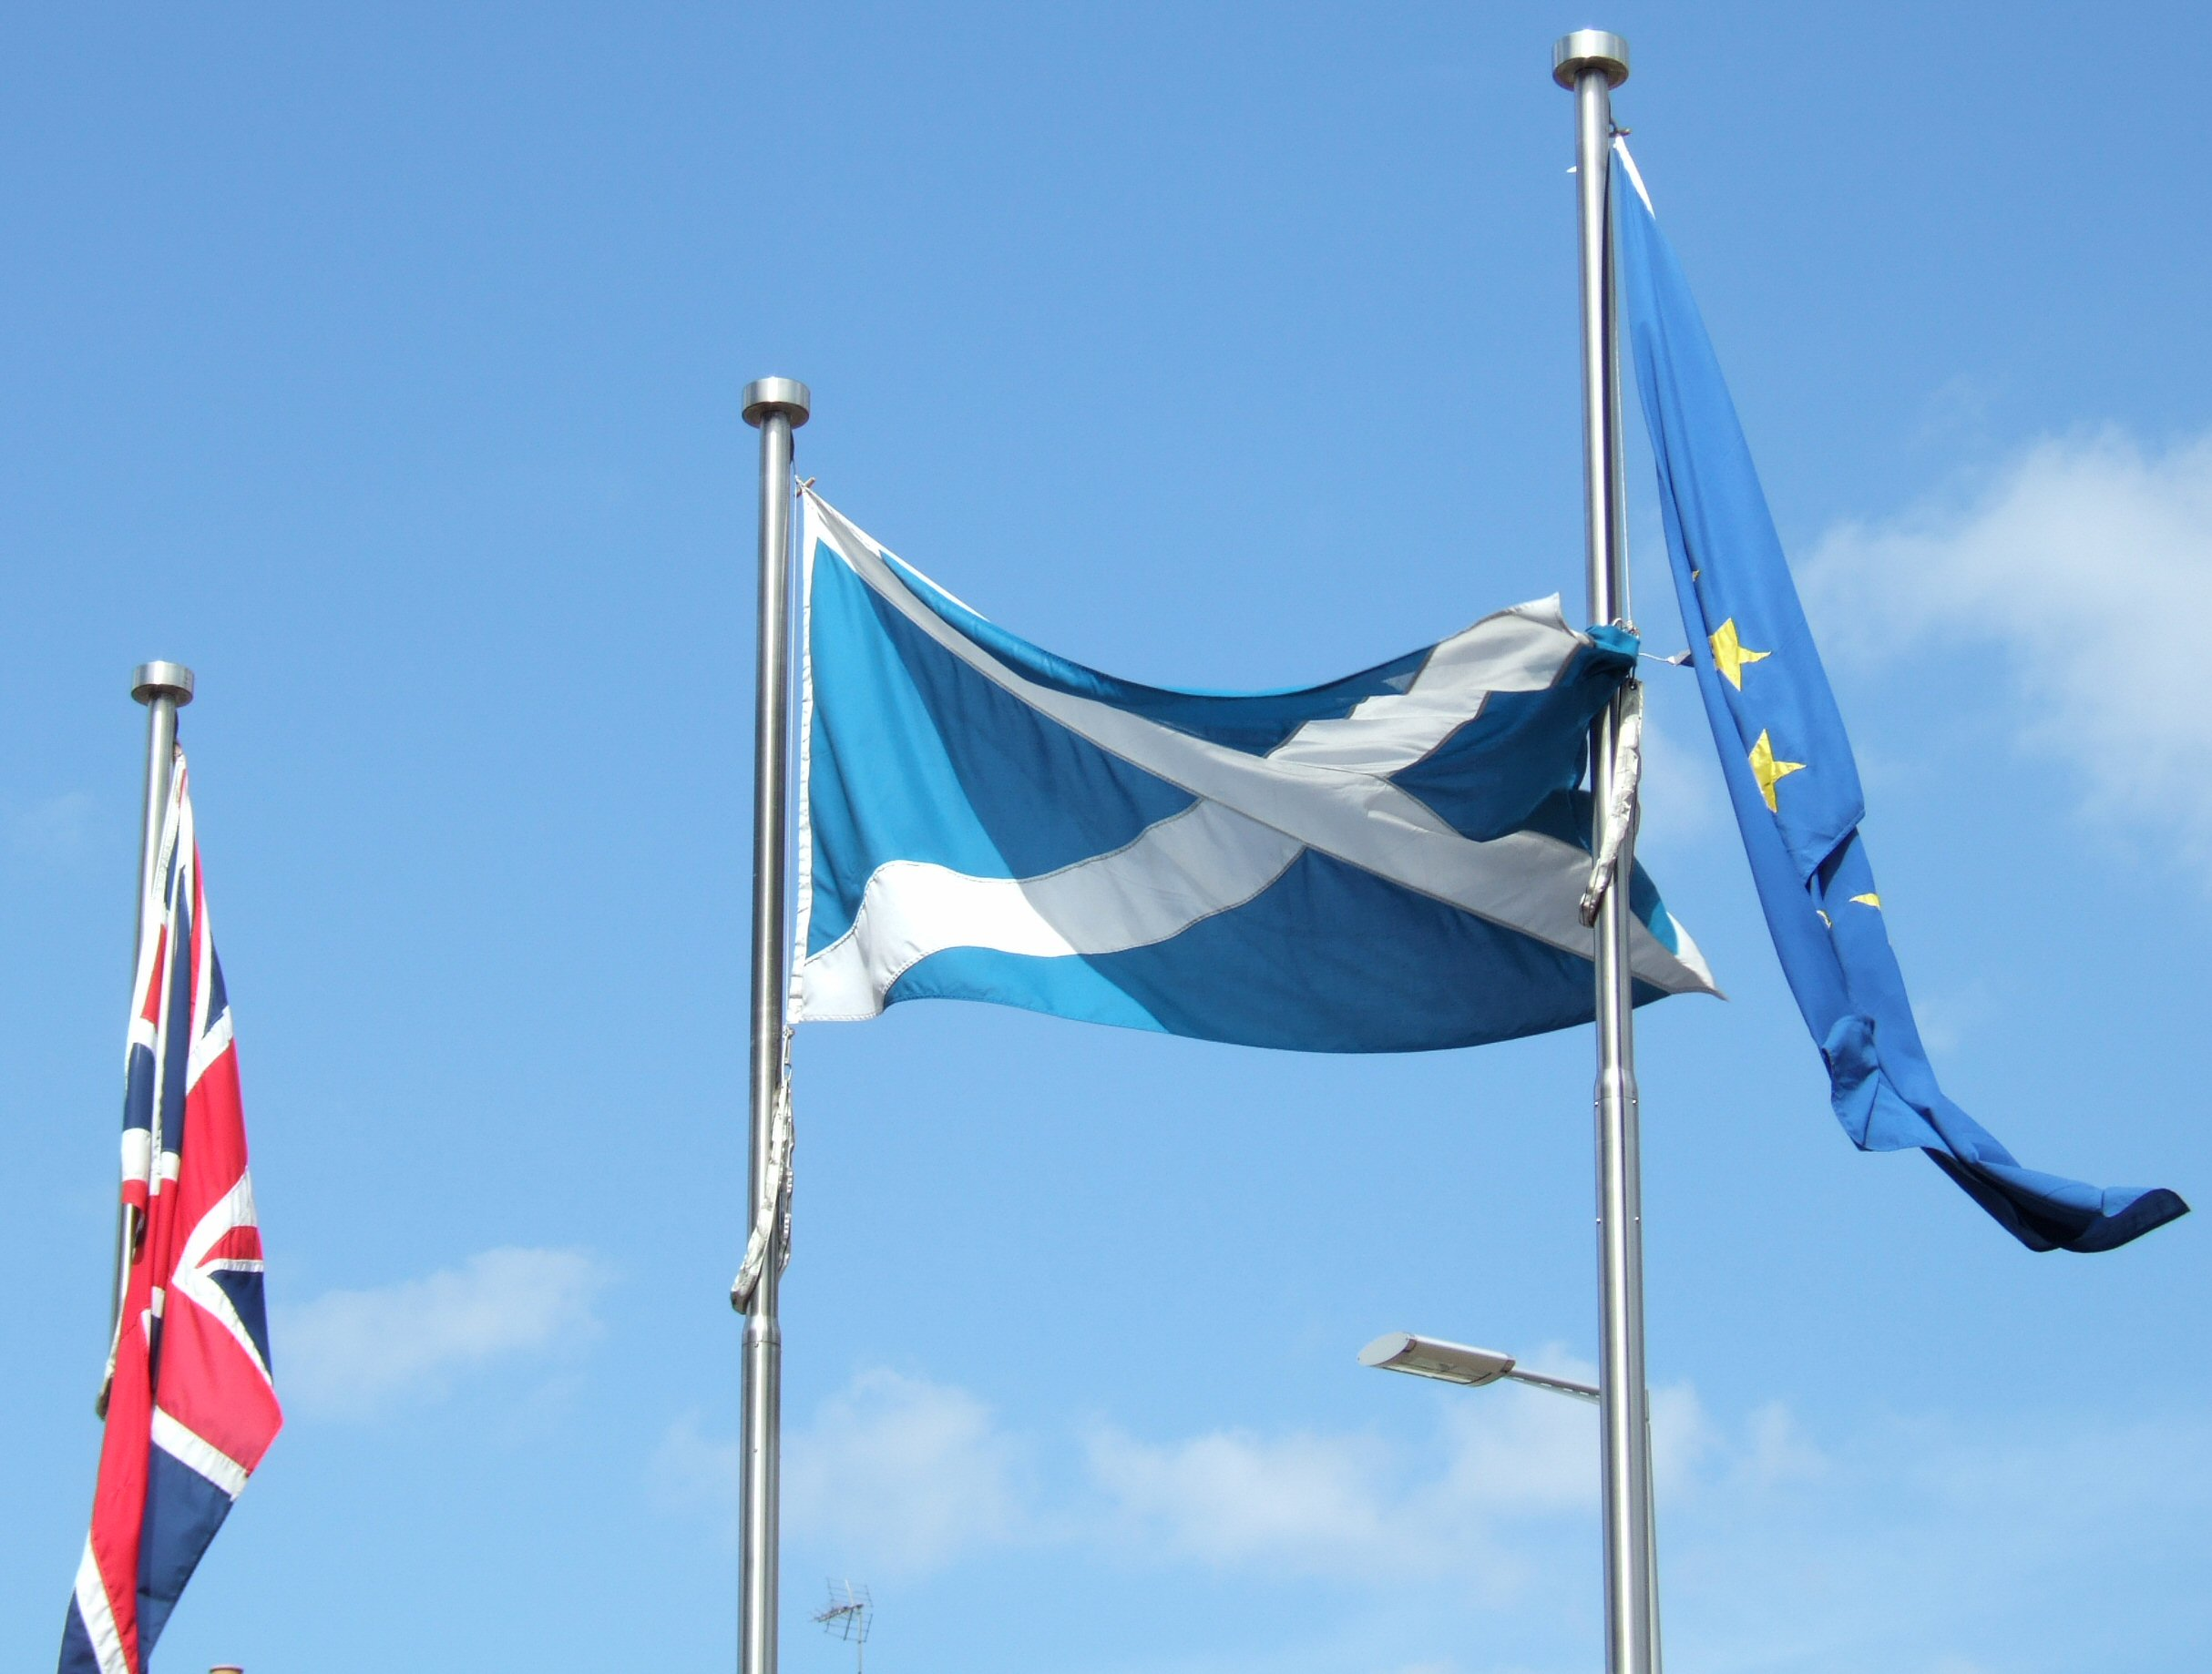 The Union Flag, Flag of Scotland, and Flag of the European Union flying outside the Parliament.